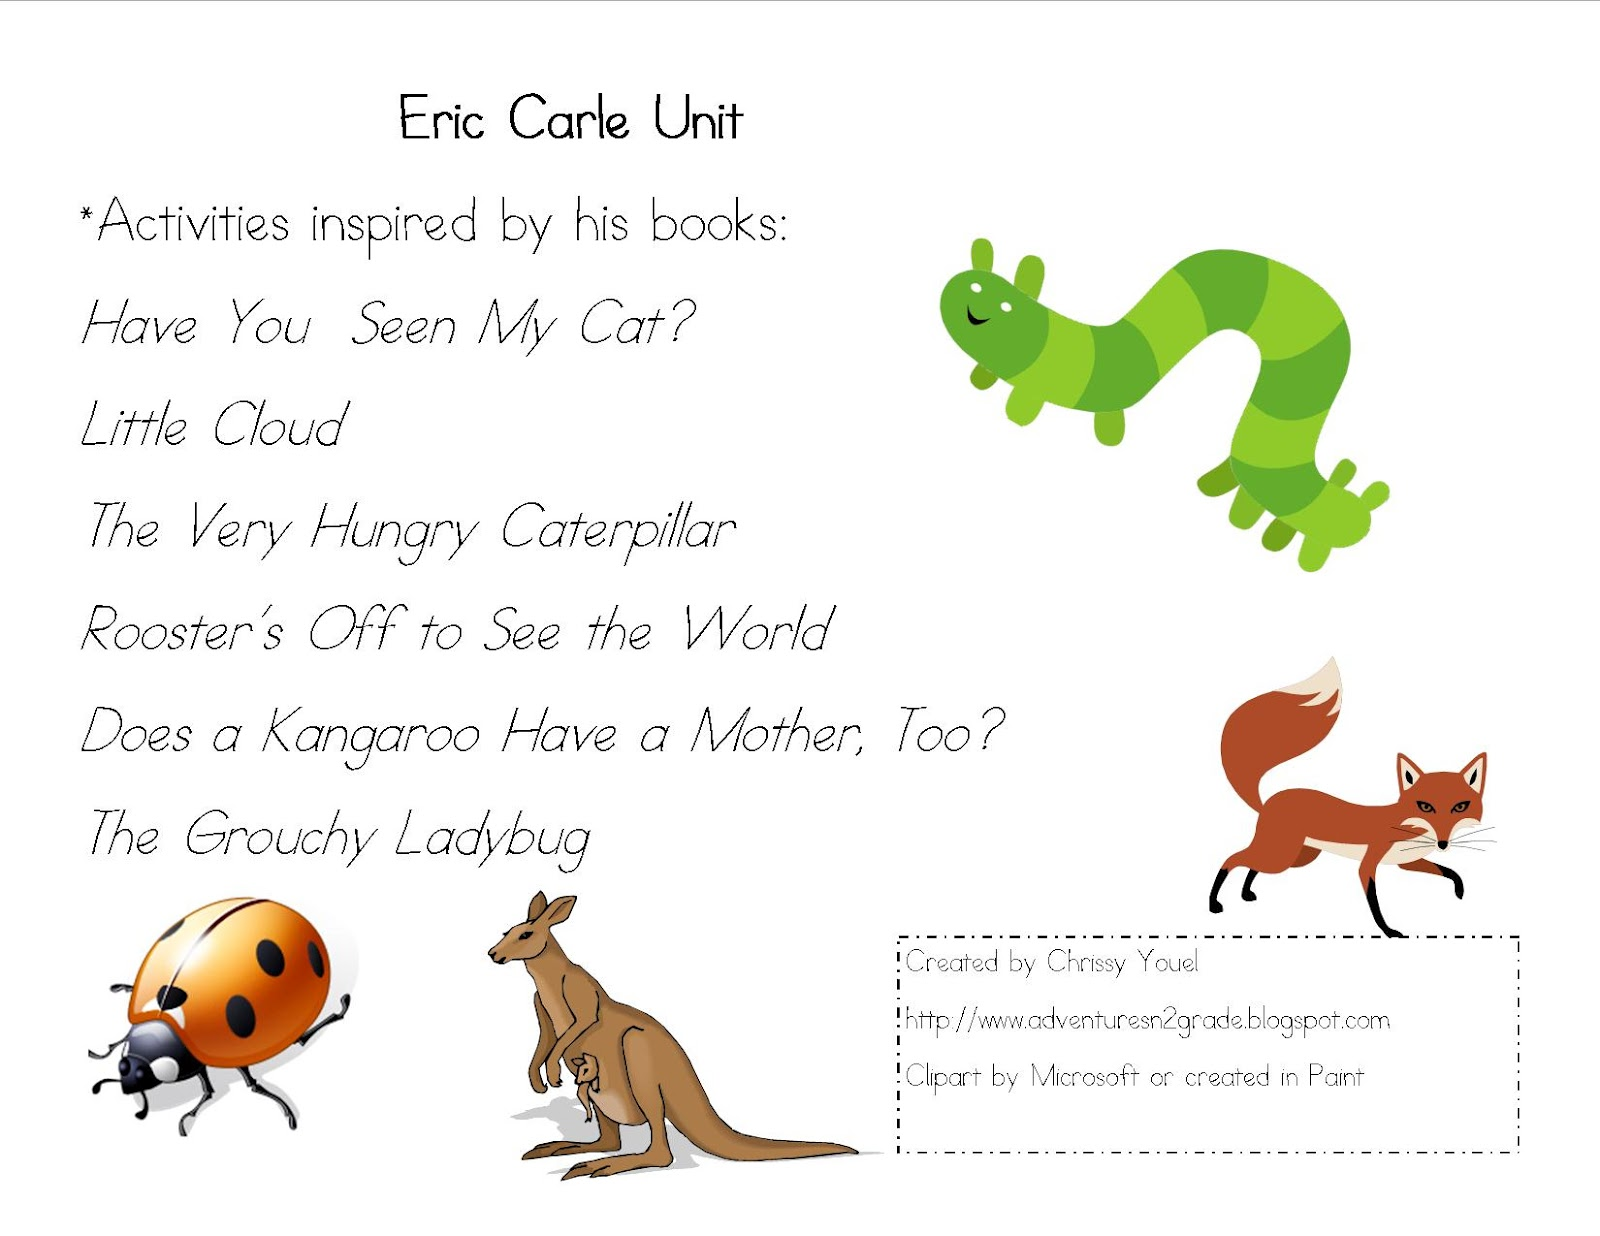 What Does The Fox Read Currently And Eric Carle